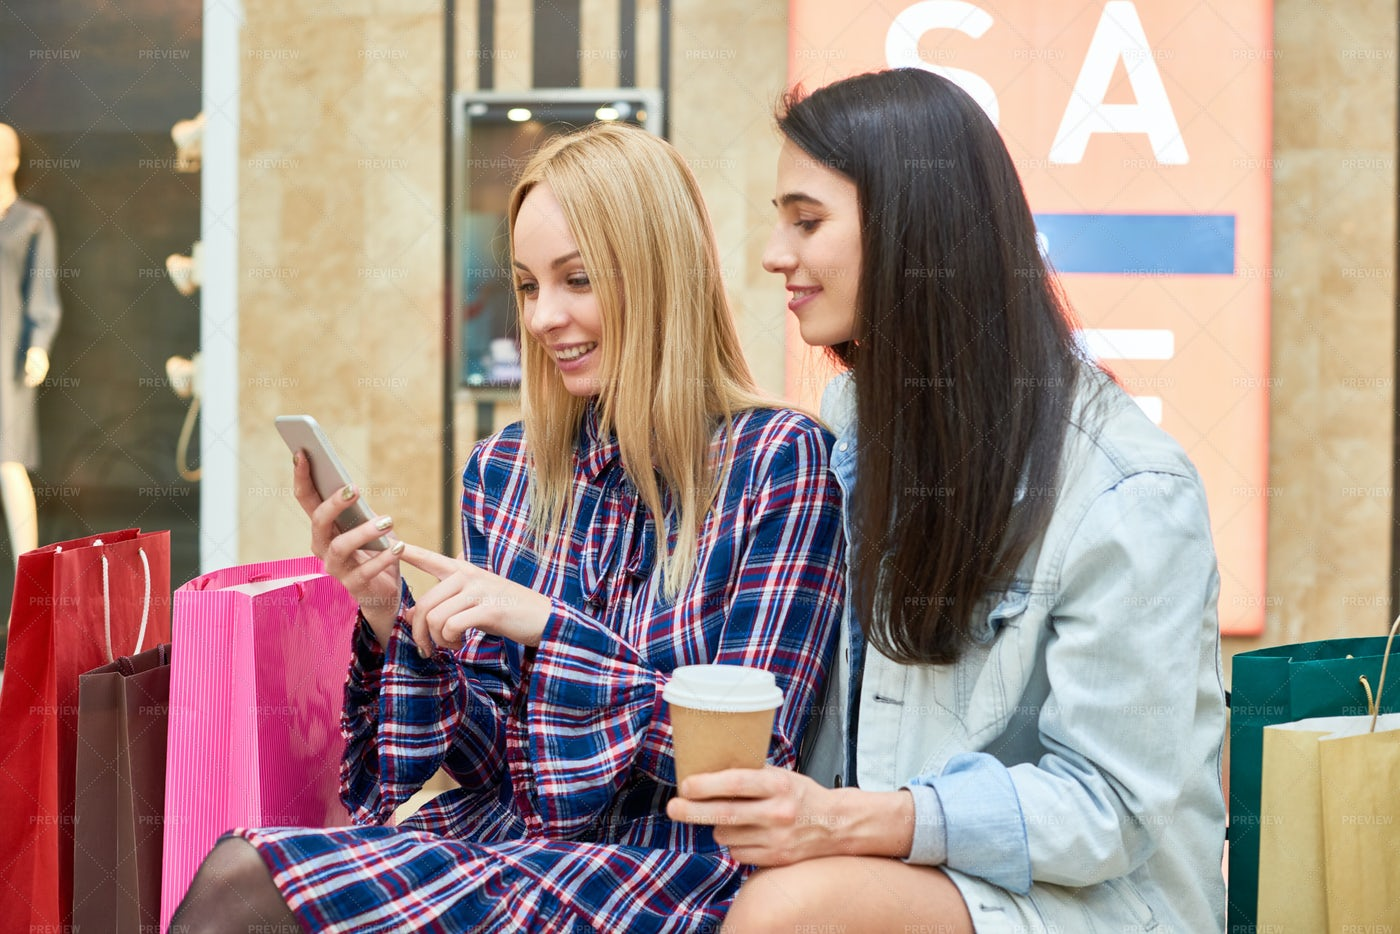 Cheerful Girls Reading About Sales...: Stock Photos